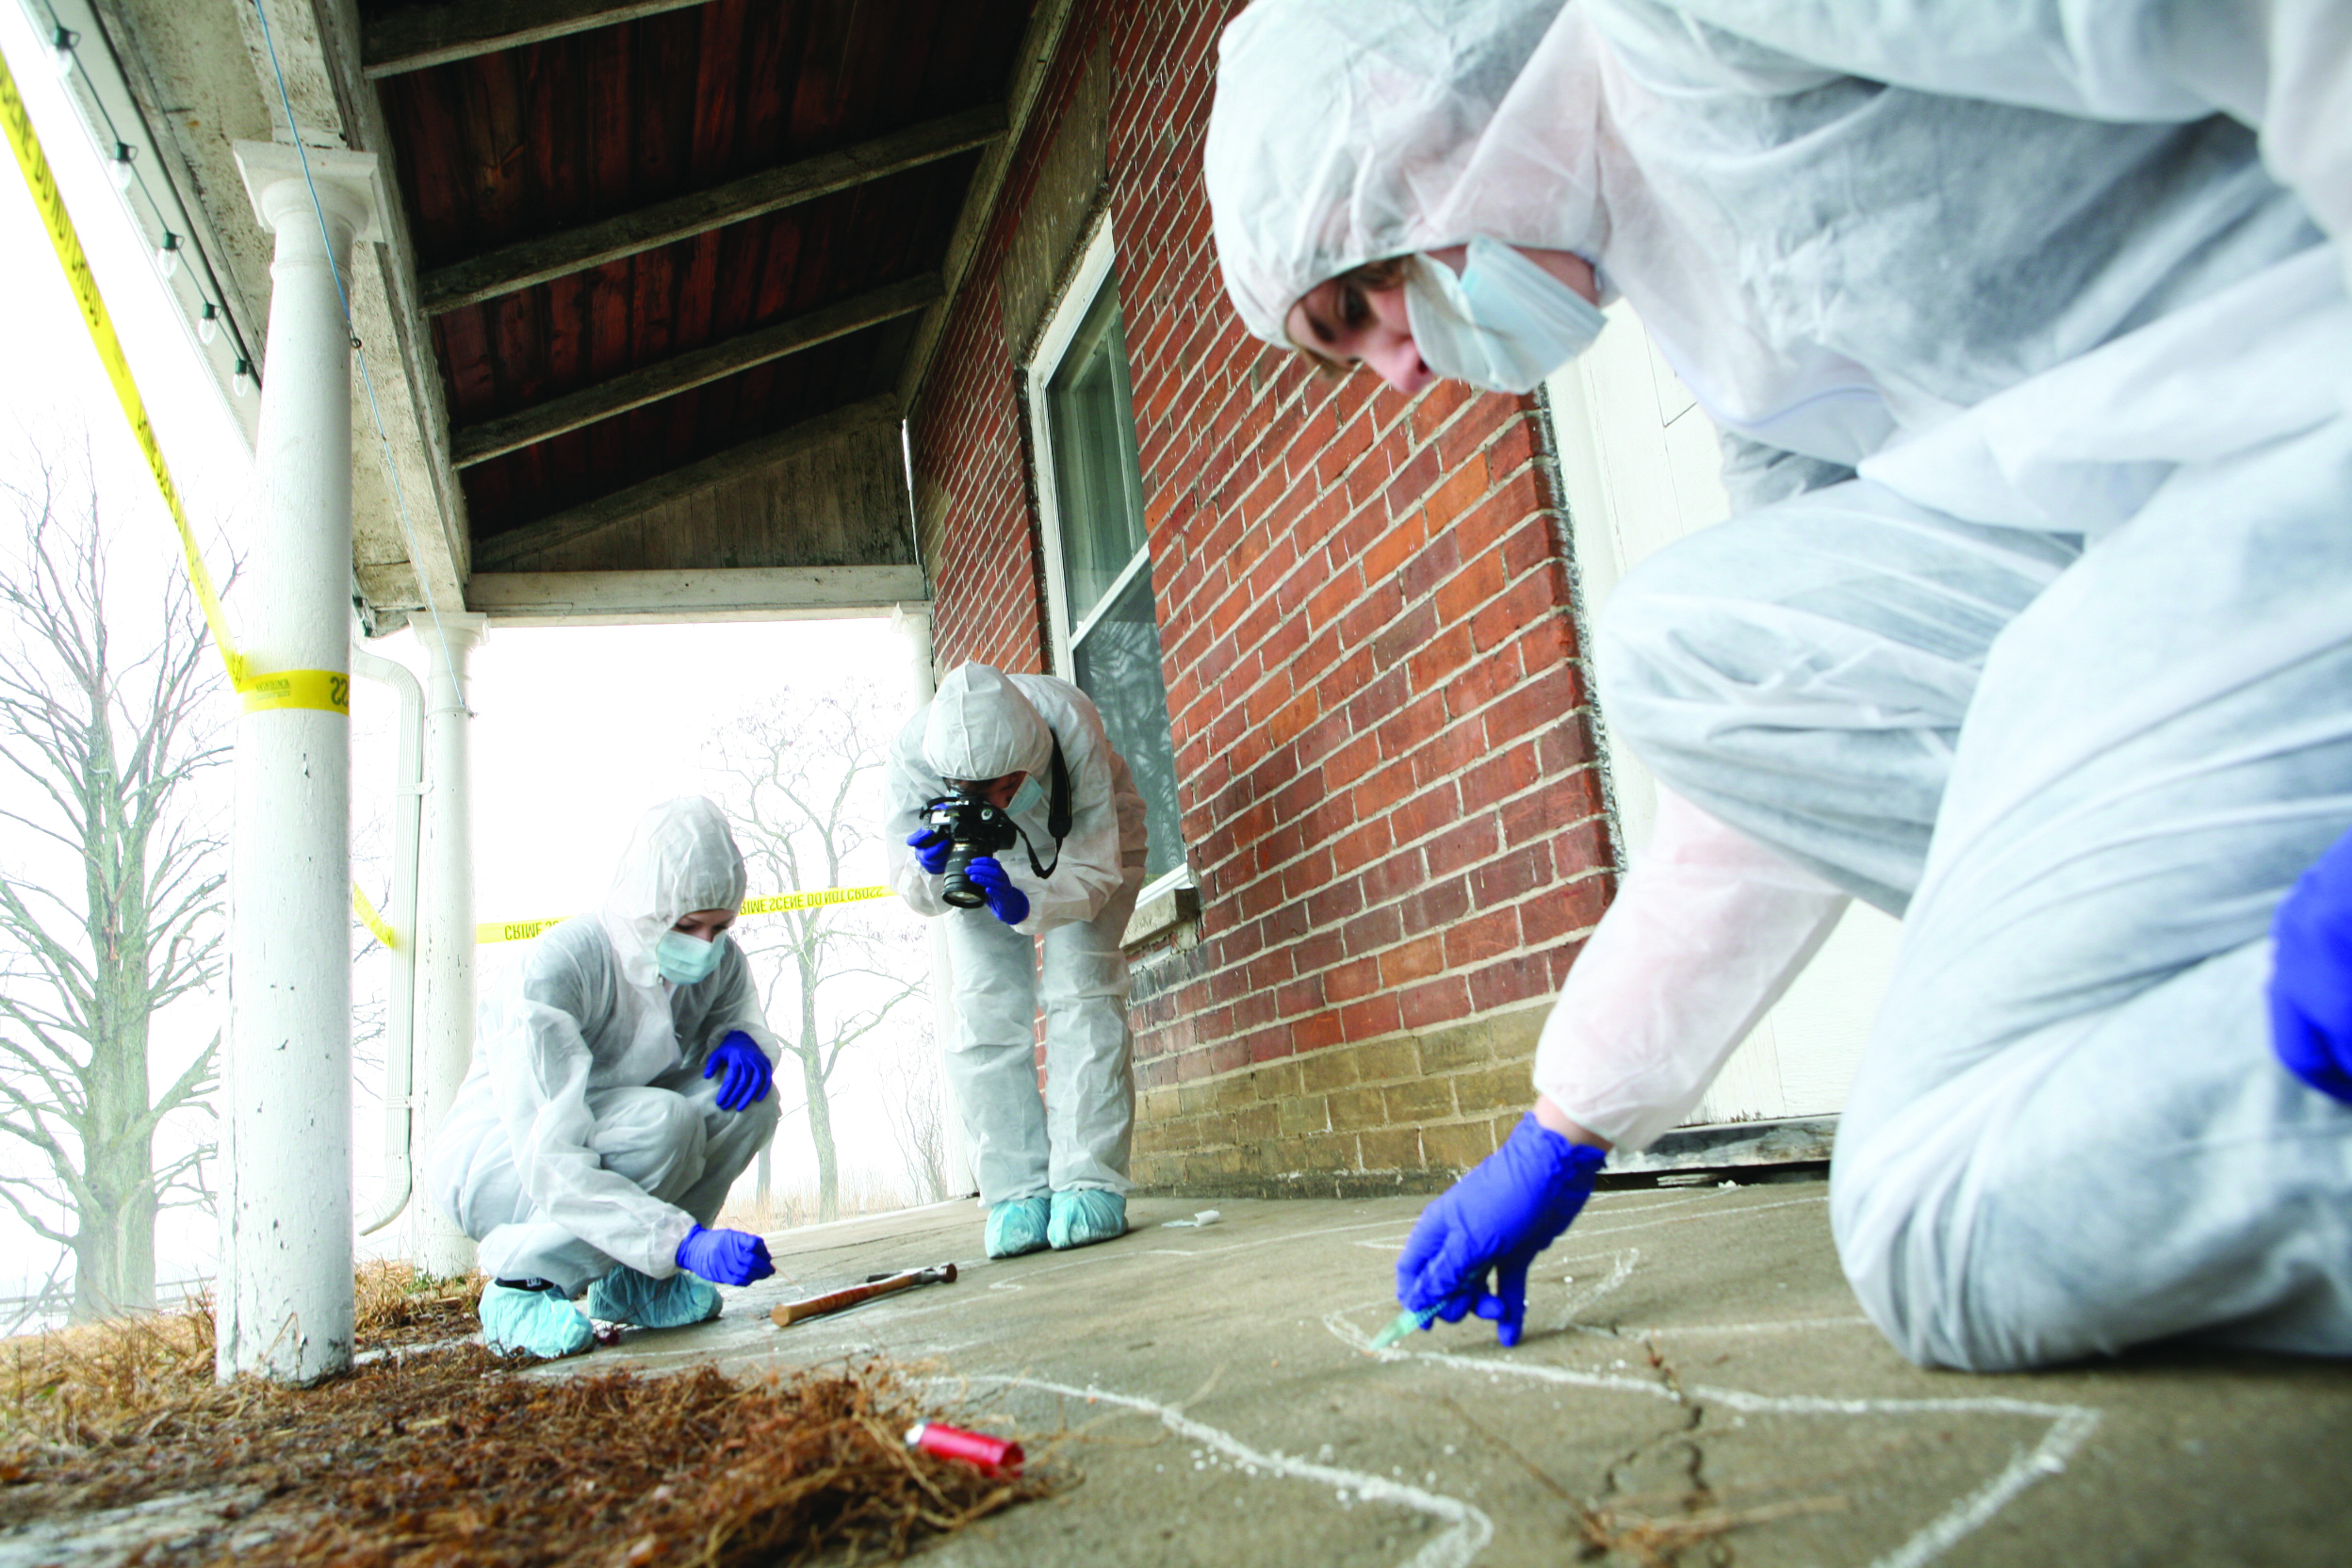 Four Individuals in white lab coats inspecting a crime scene